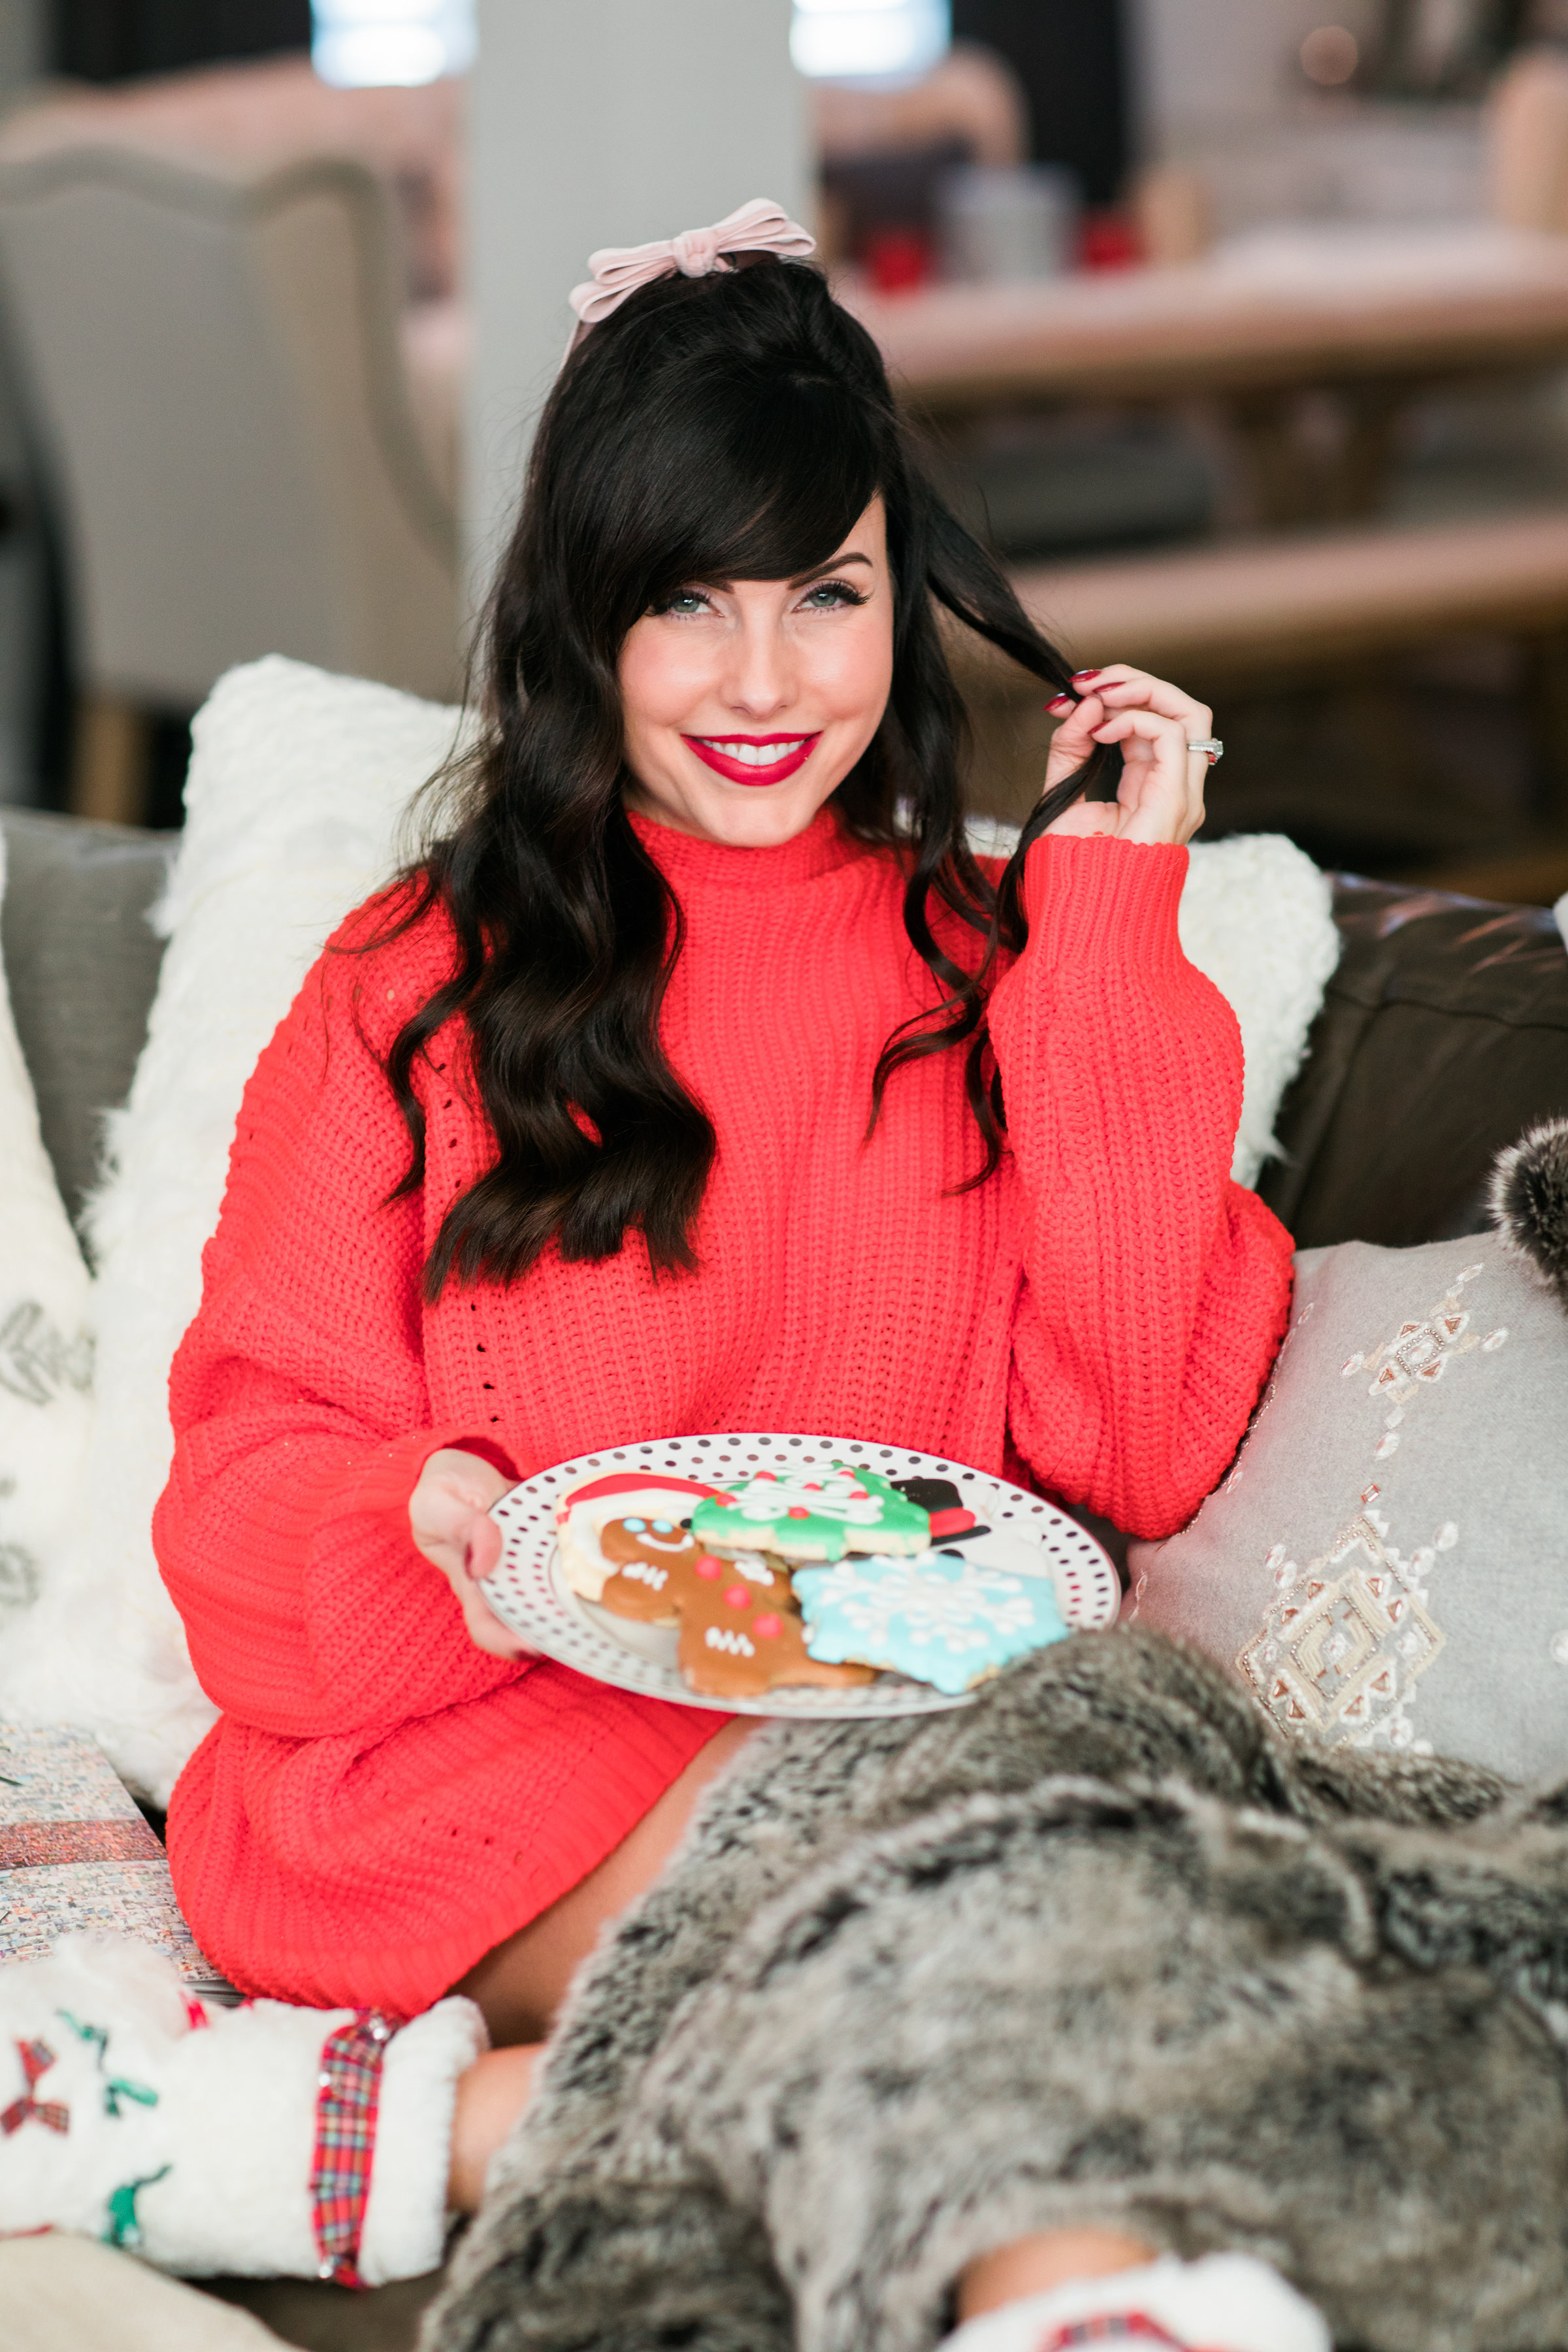 christmas sweater and cookies 1.jpg